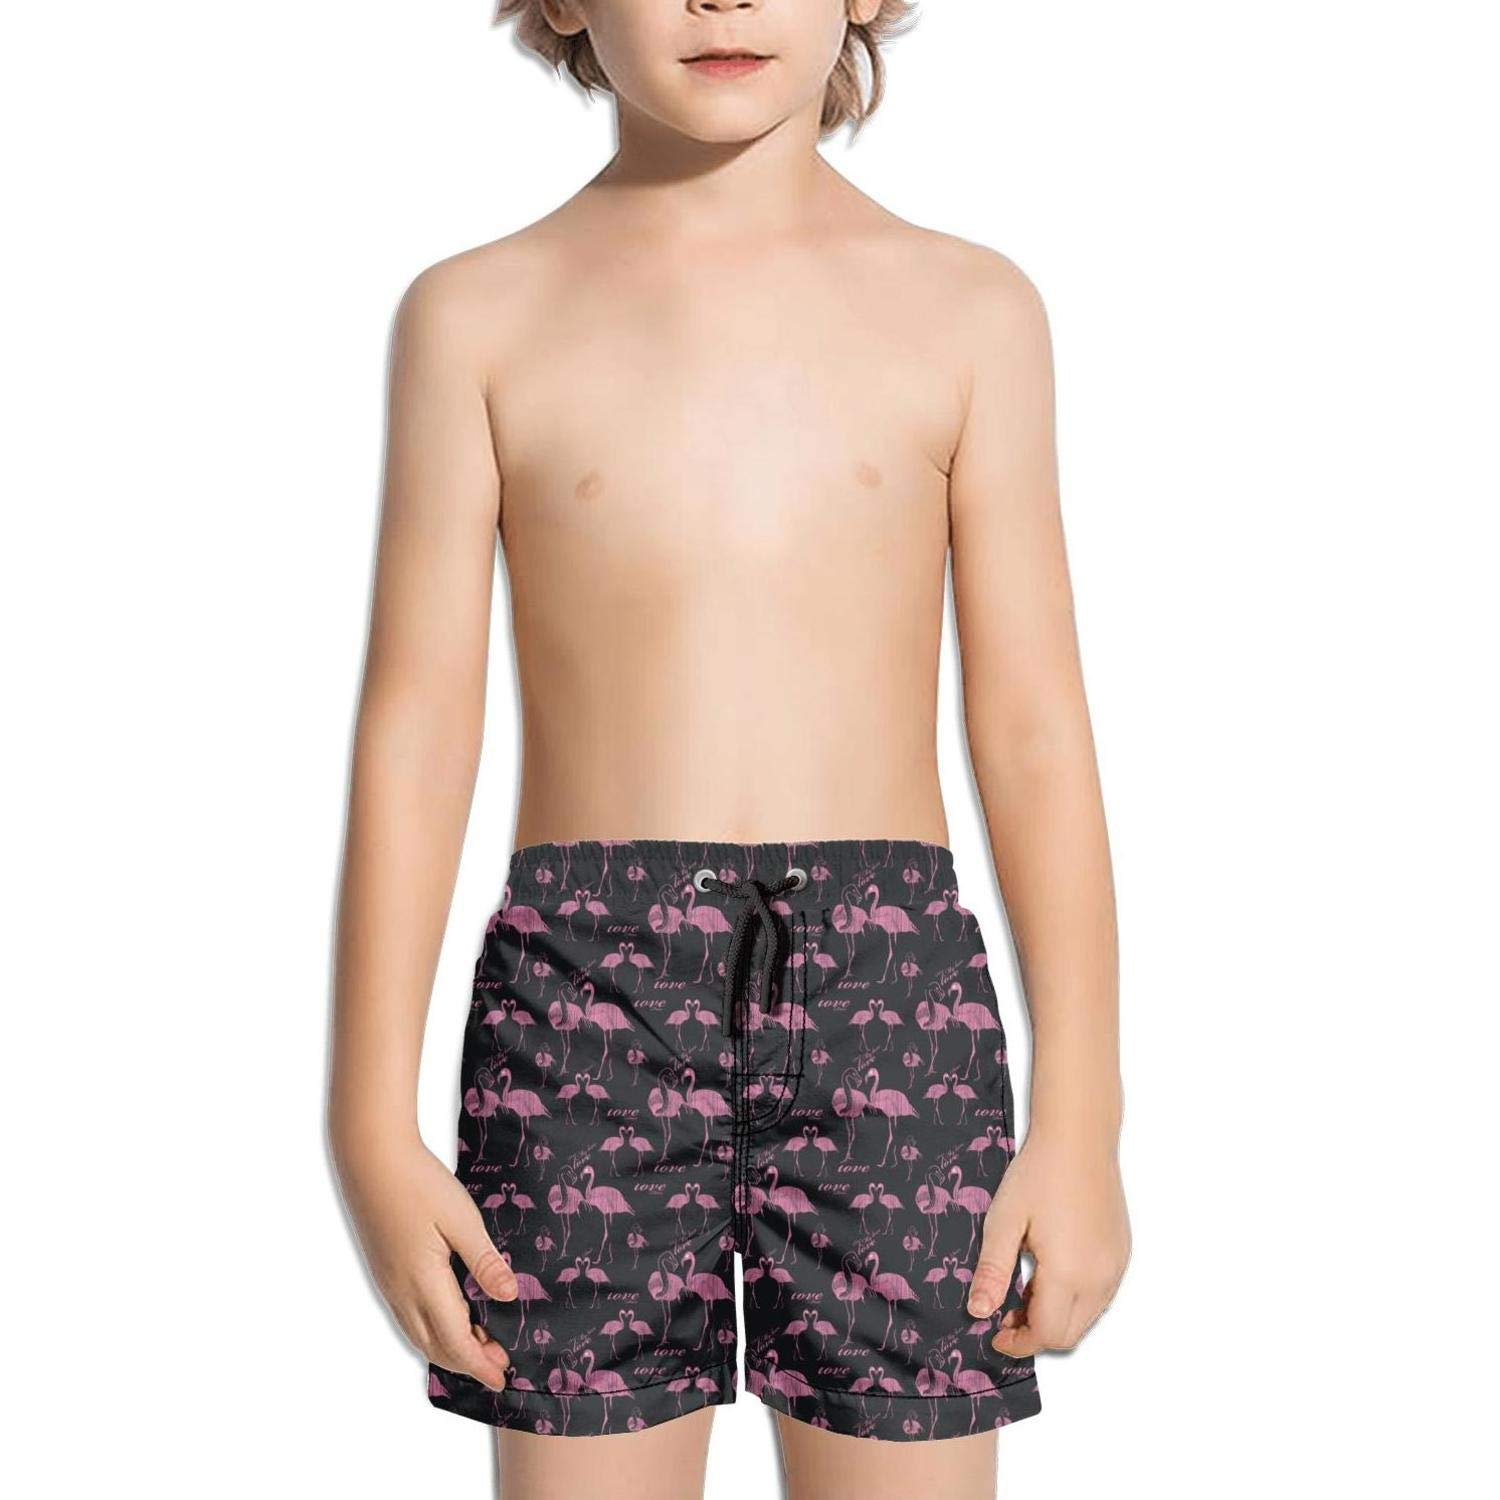 Ina Fers.Quick Dry Swim Trunks Pink Flamingo in Love Black Shorts Boys